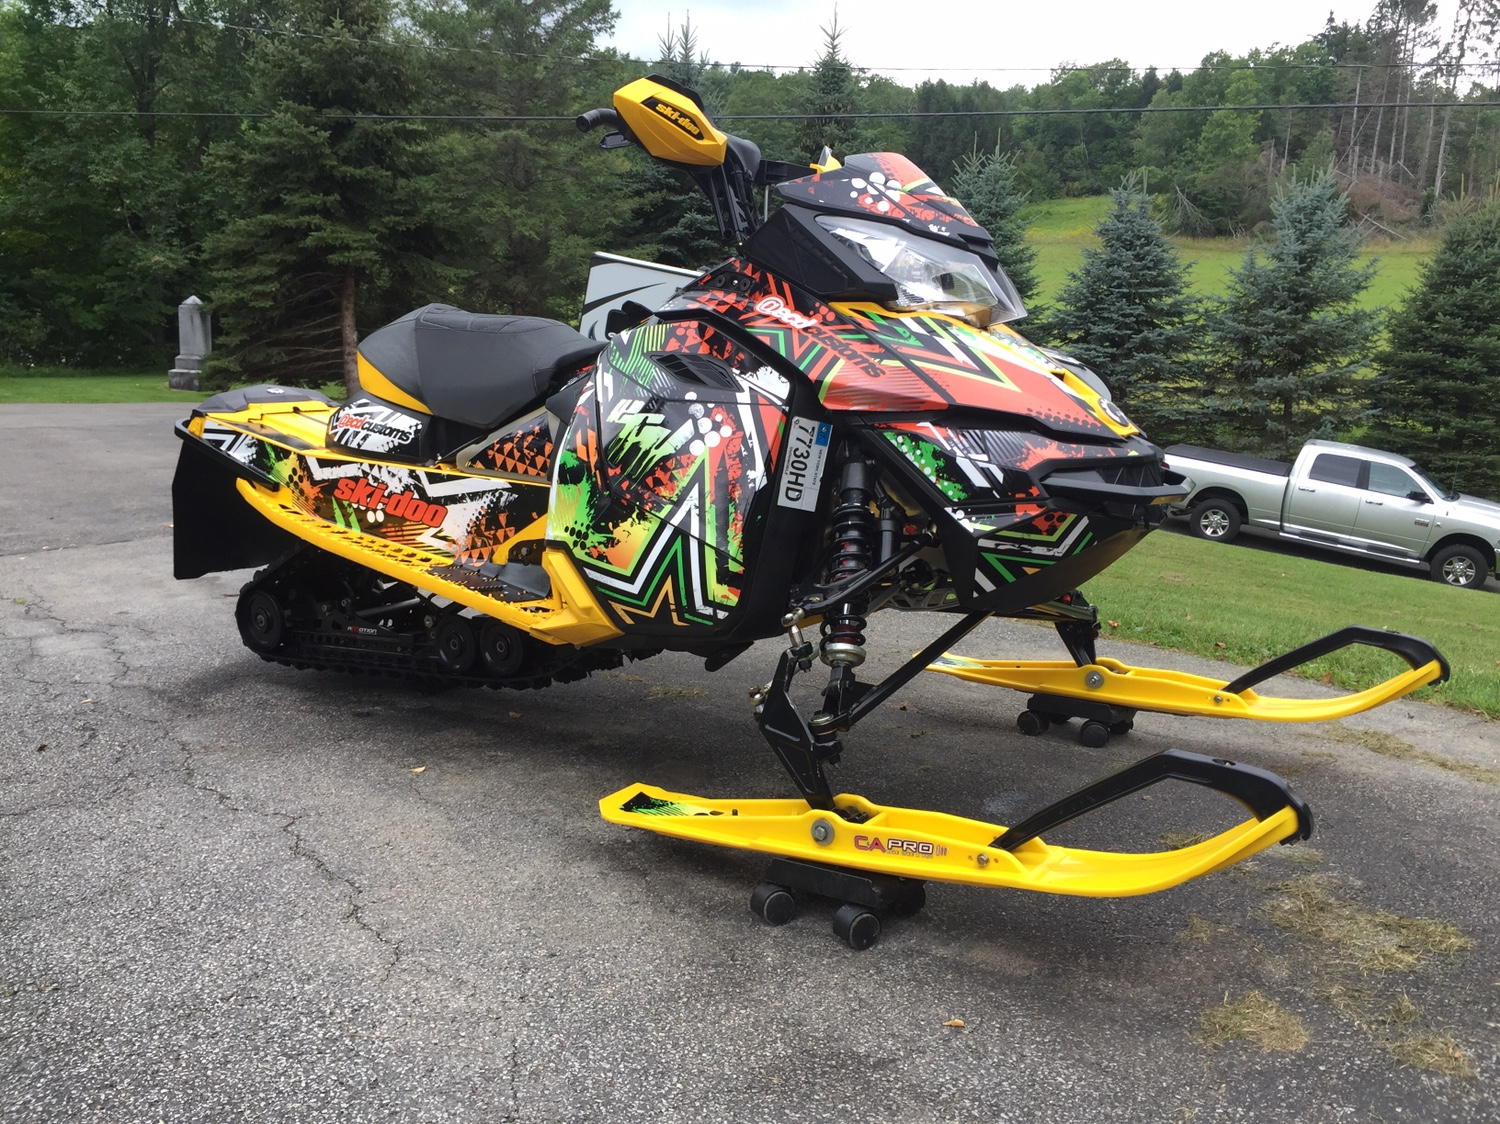 2014 Ski Doo 600RS $5800 NY - Race Sled Classifieds